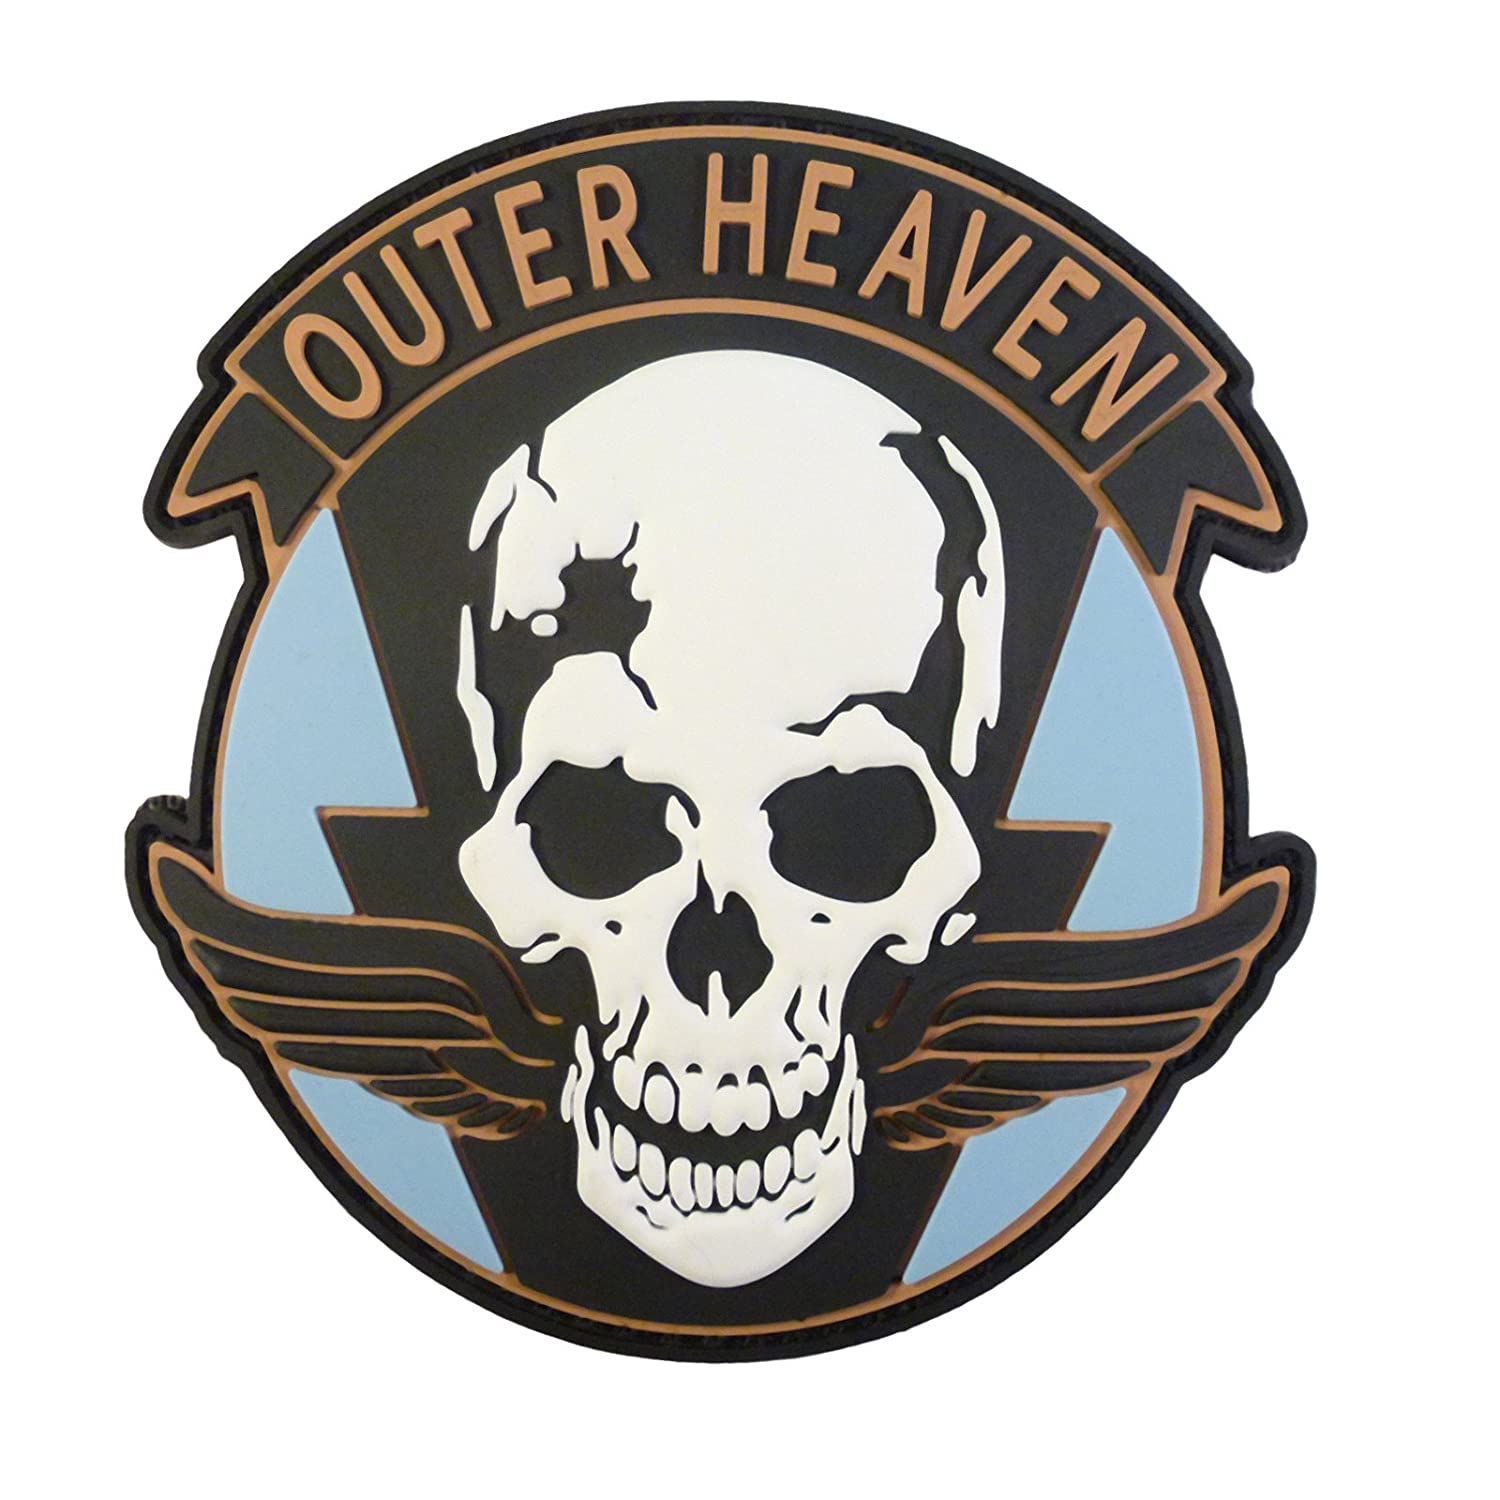 Metal Gear Solid Outer Heaven The Phantom Pain Cosplay PVC Rubber 3D Hook-and-Loop Patch 2AFTER1 P.1751.2.V